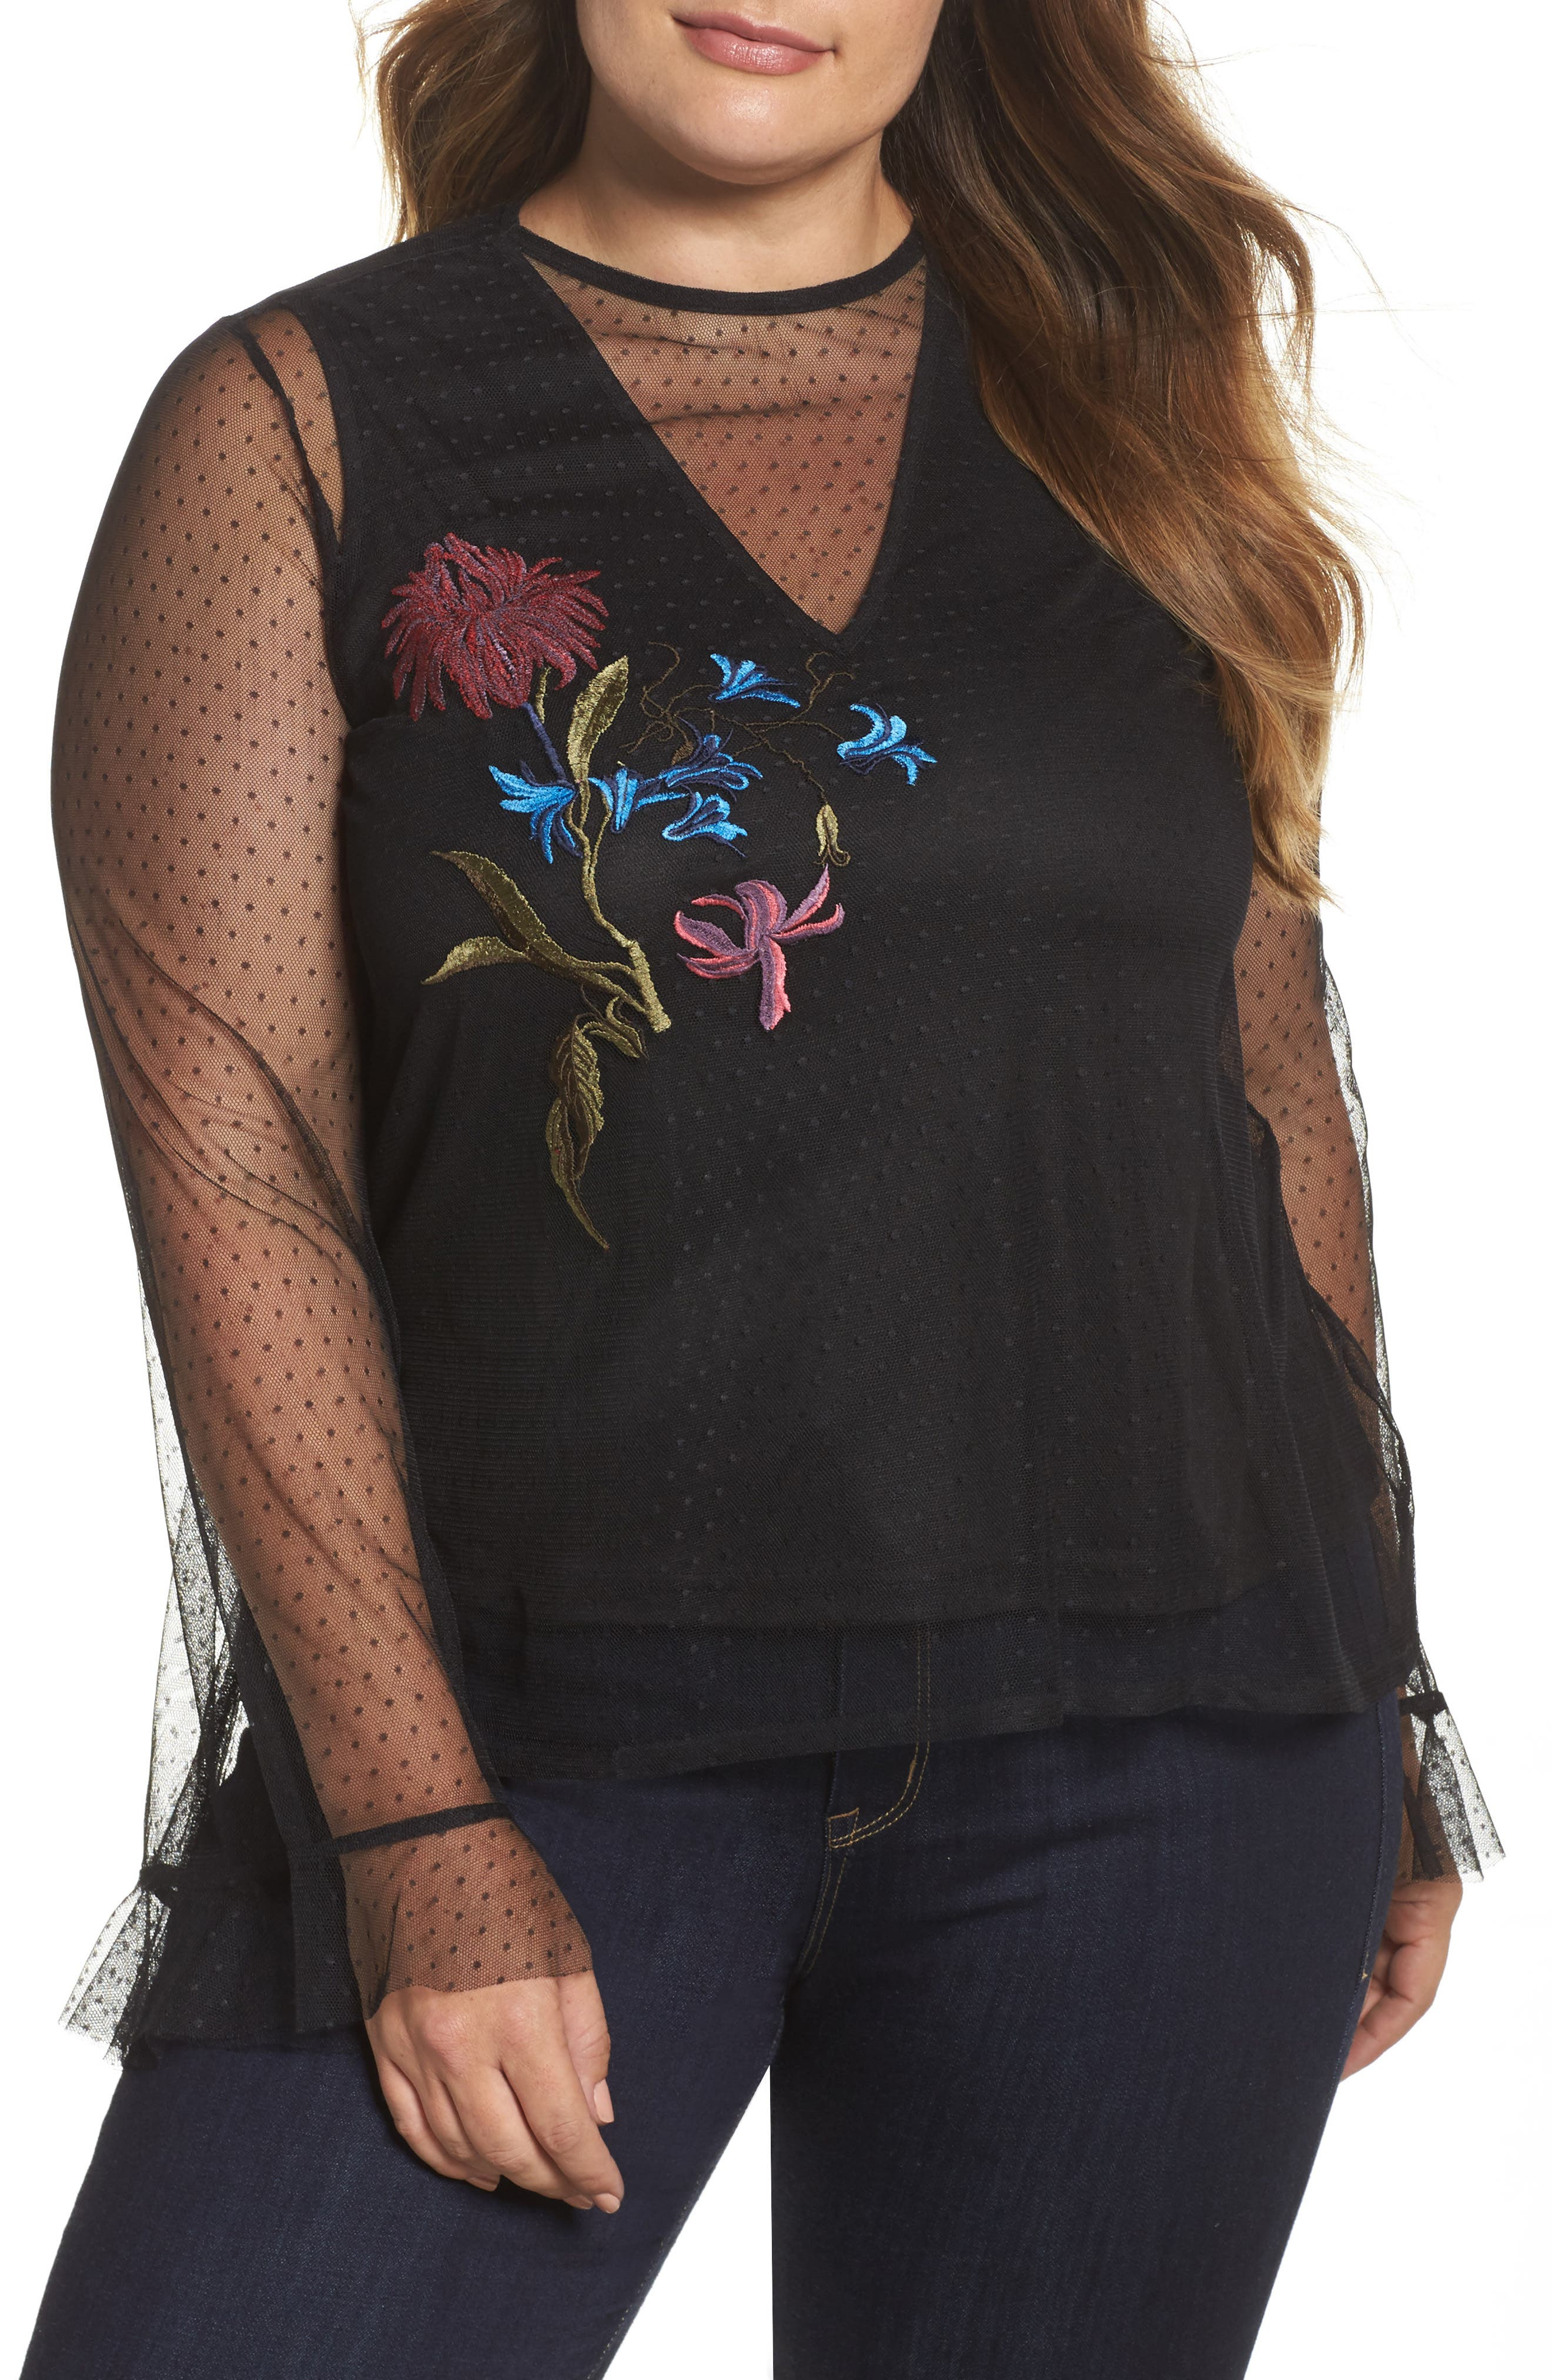 Alternate Image 1 Selected - LOST INK Embroidered Swing Top (Plus Size)